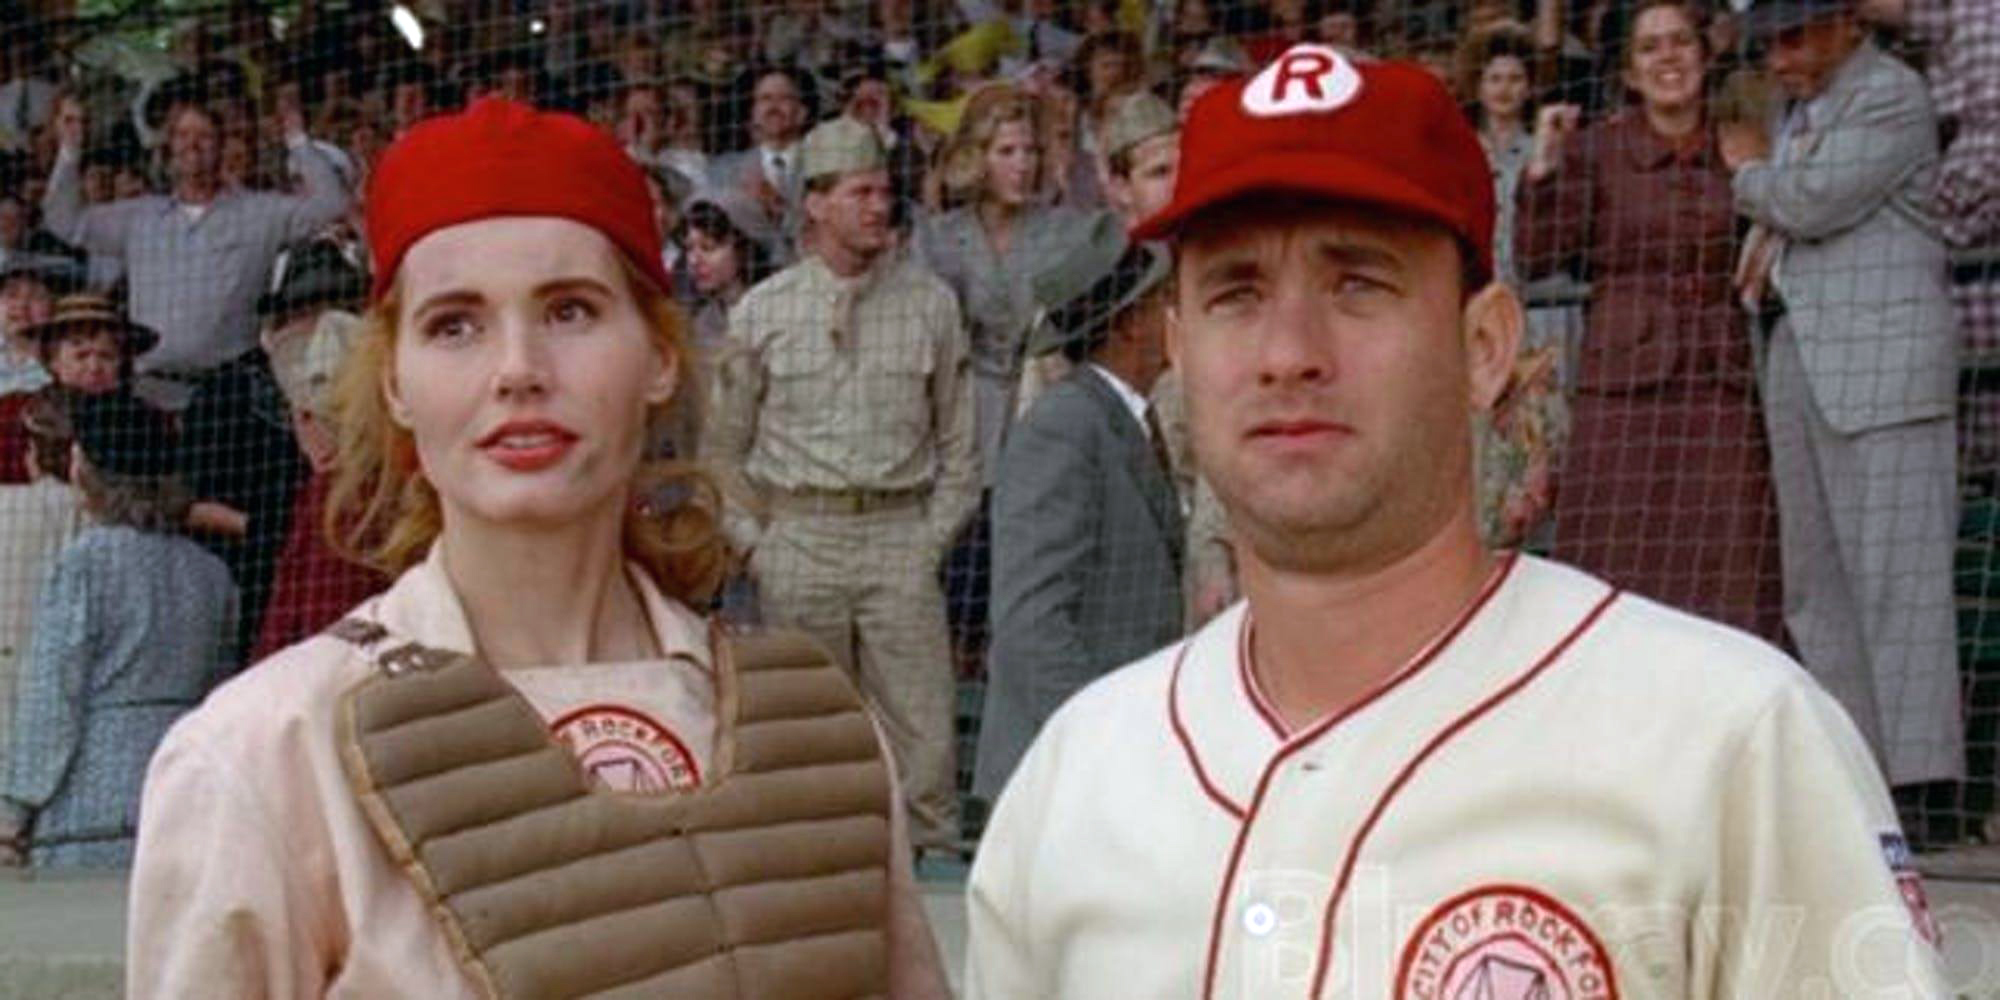 A League of Their Own, Geena David and Tom Hanks